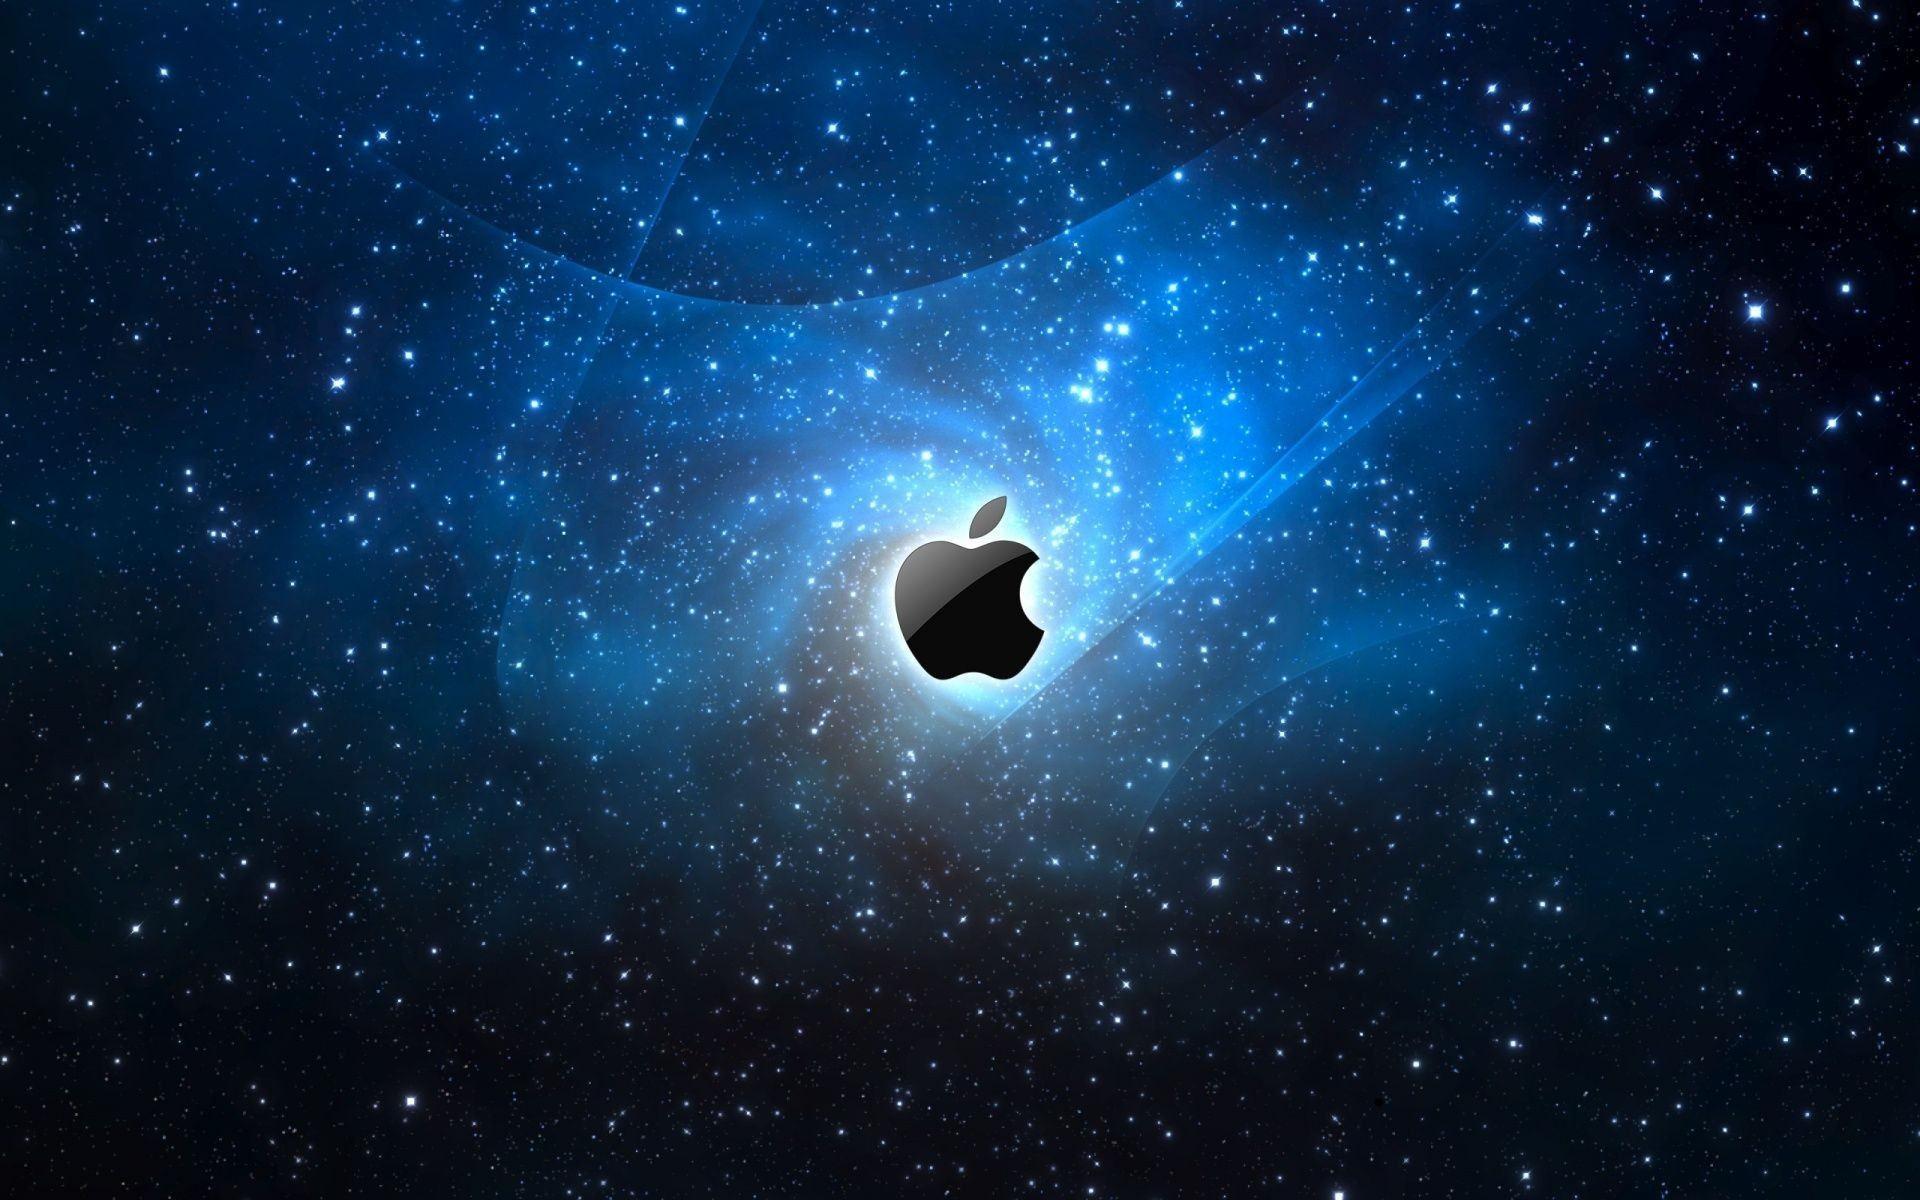 1920x1200 Apple Logo HD Wallpapers - Wallpaper Cave